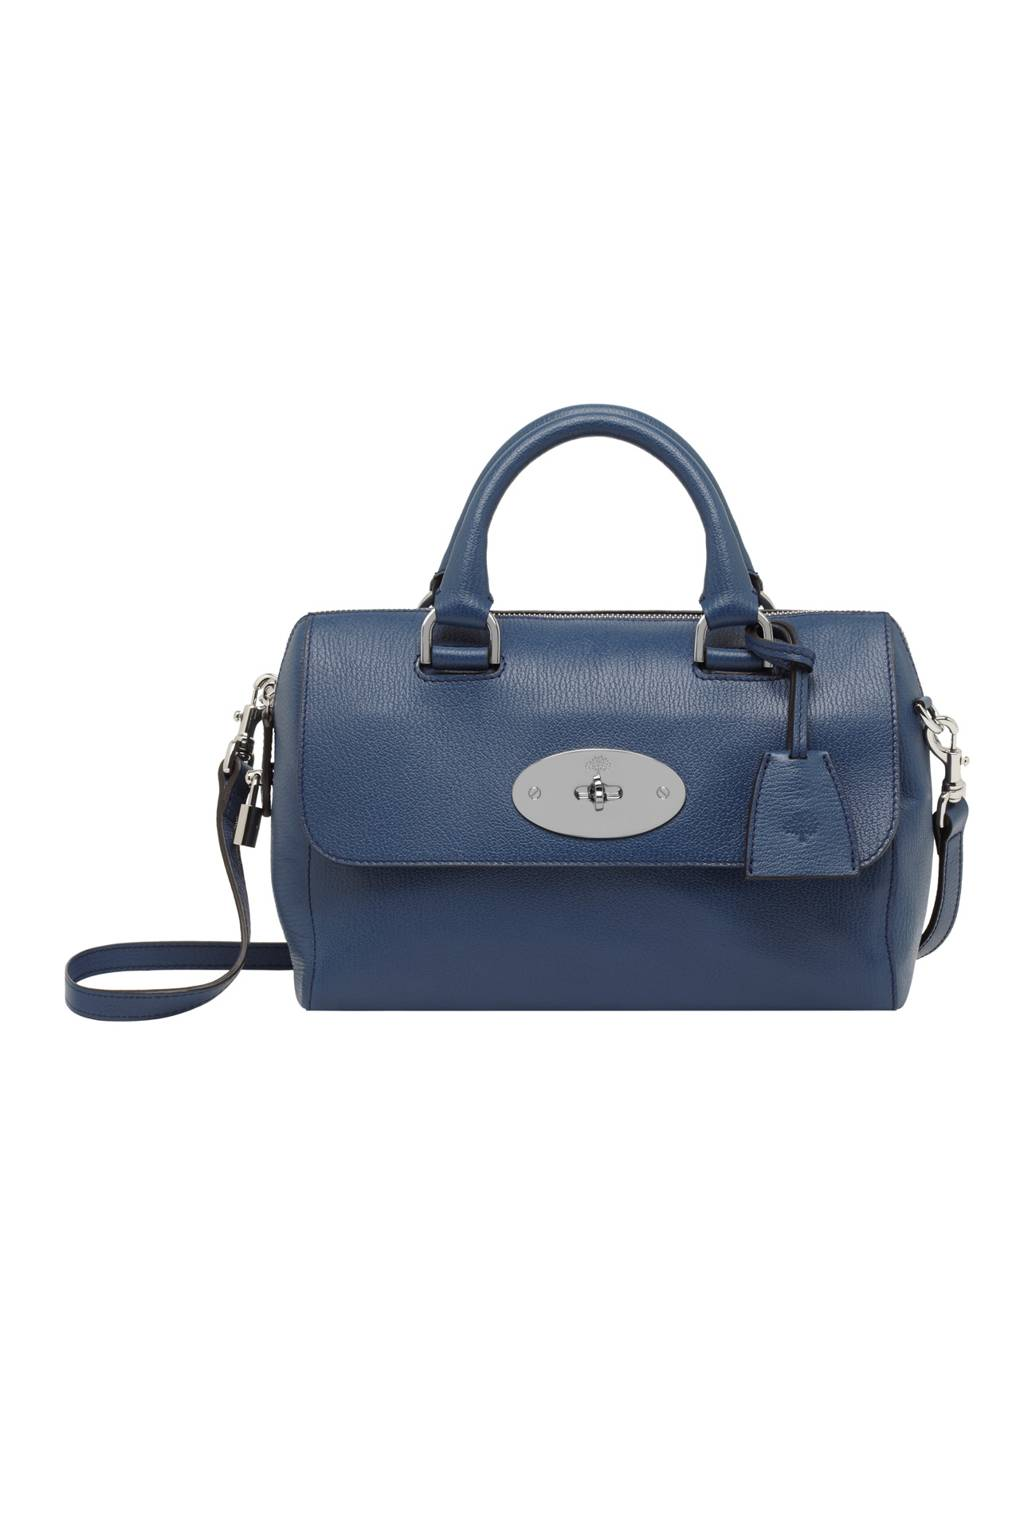 2b14aa27f163 Mulberry Del Rey Bag Launched – Handbag Launched